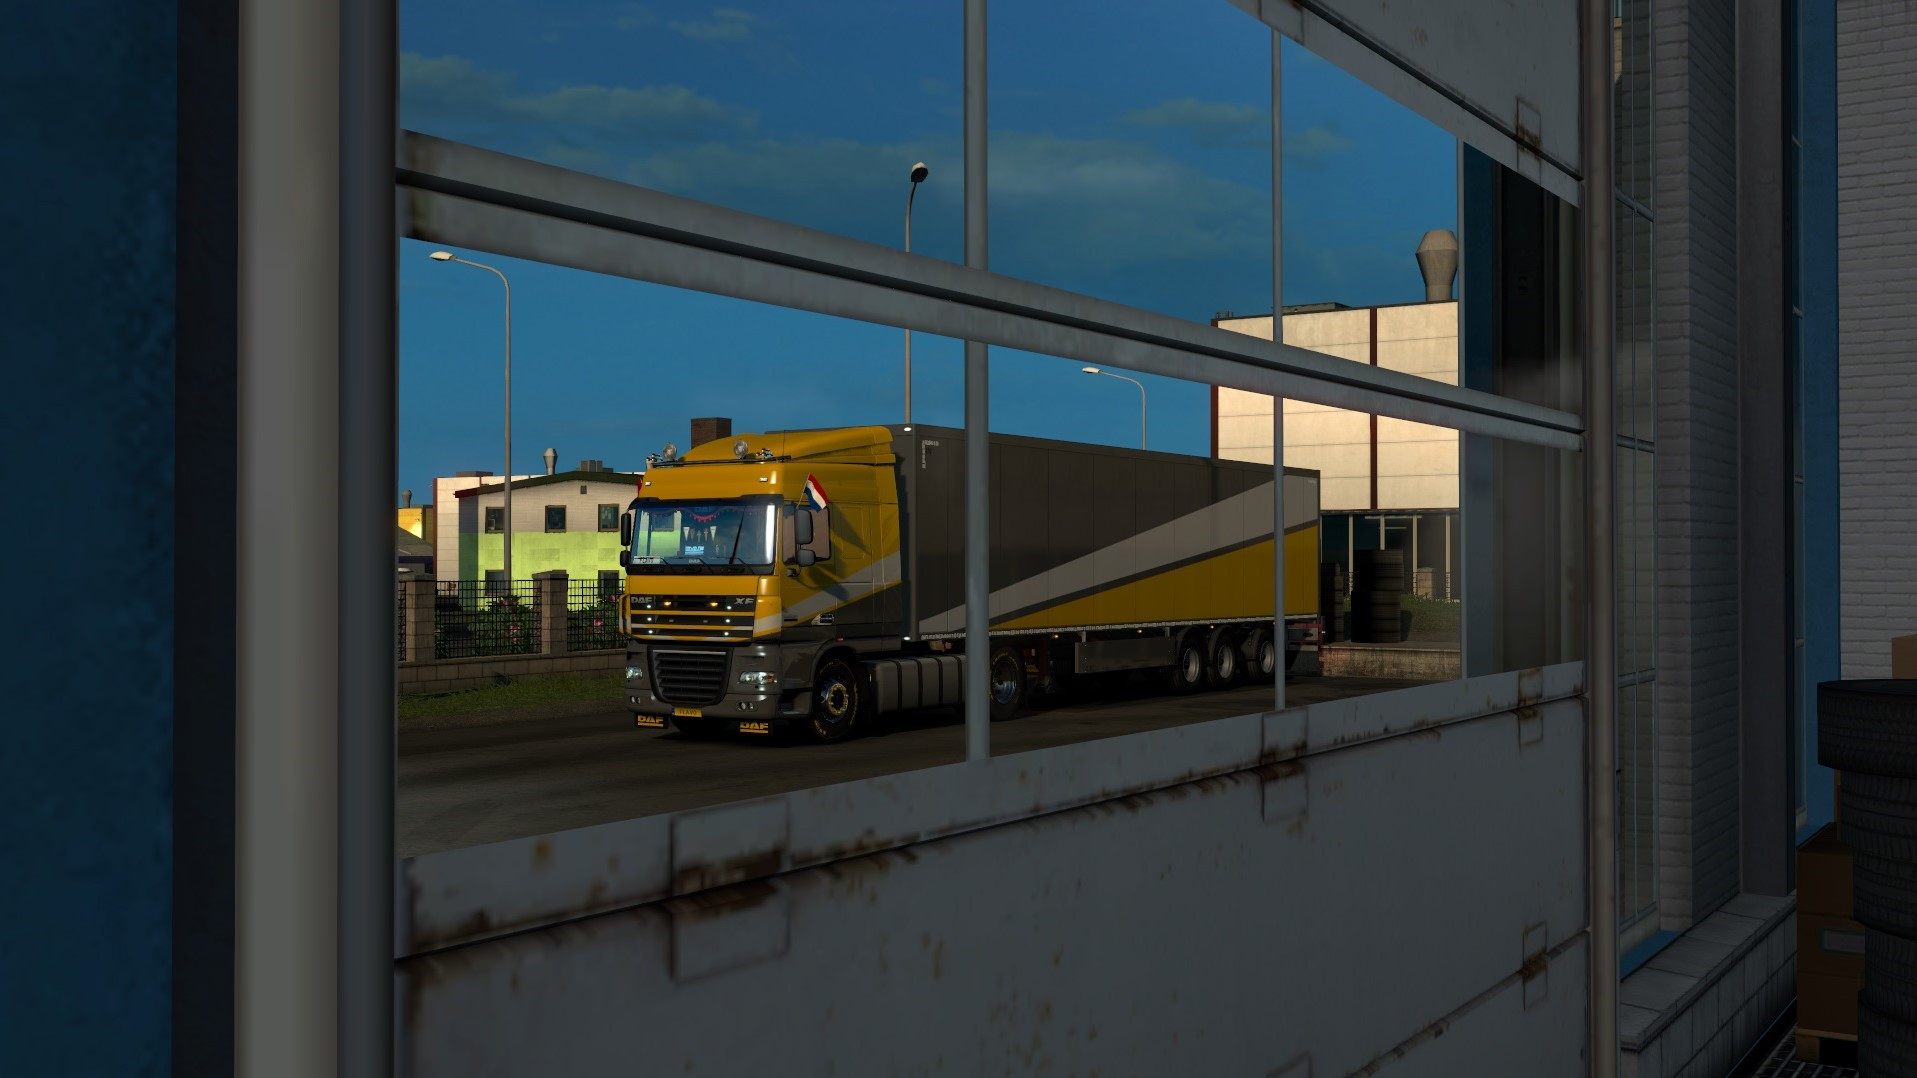 Fast Cargo rolling out for some deliveries